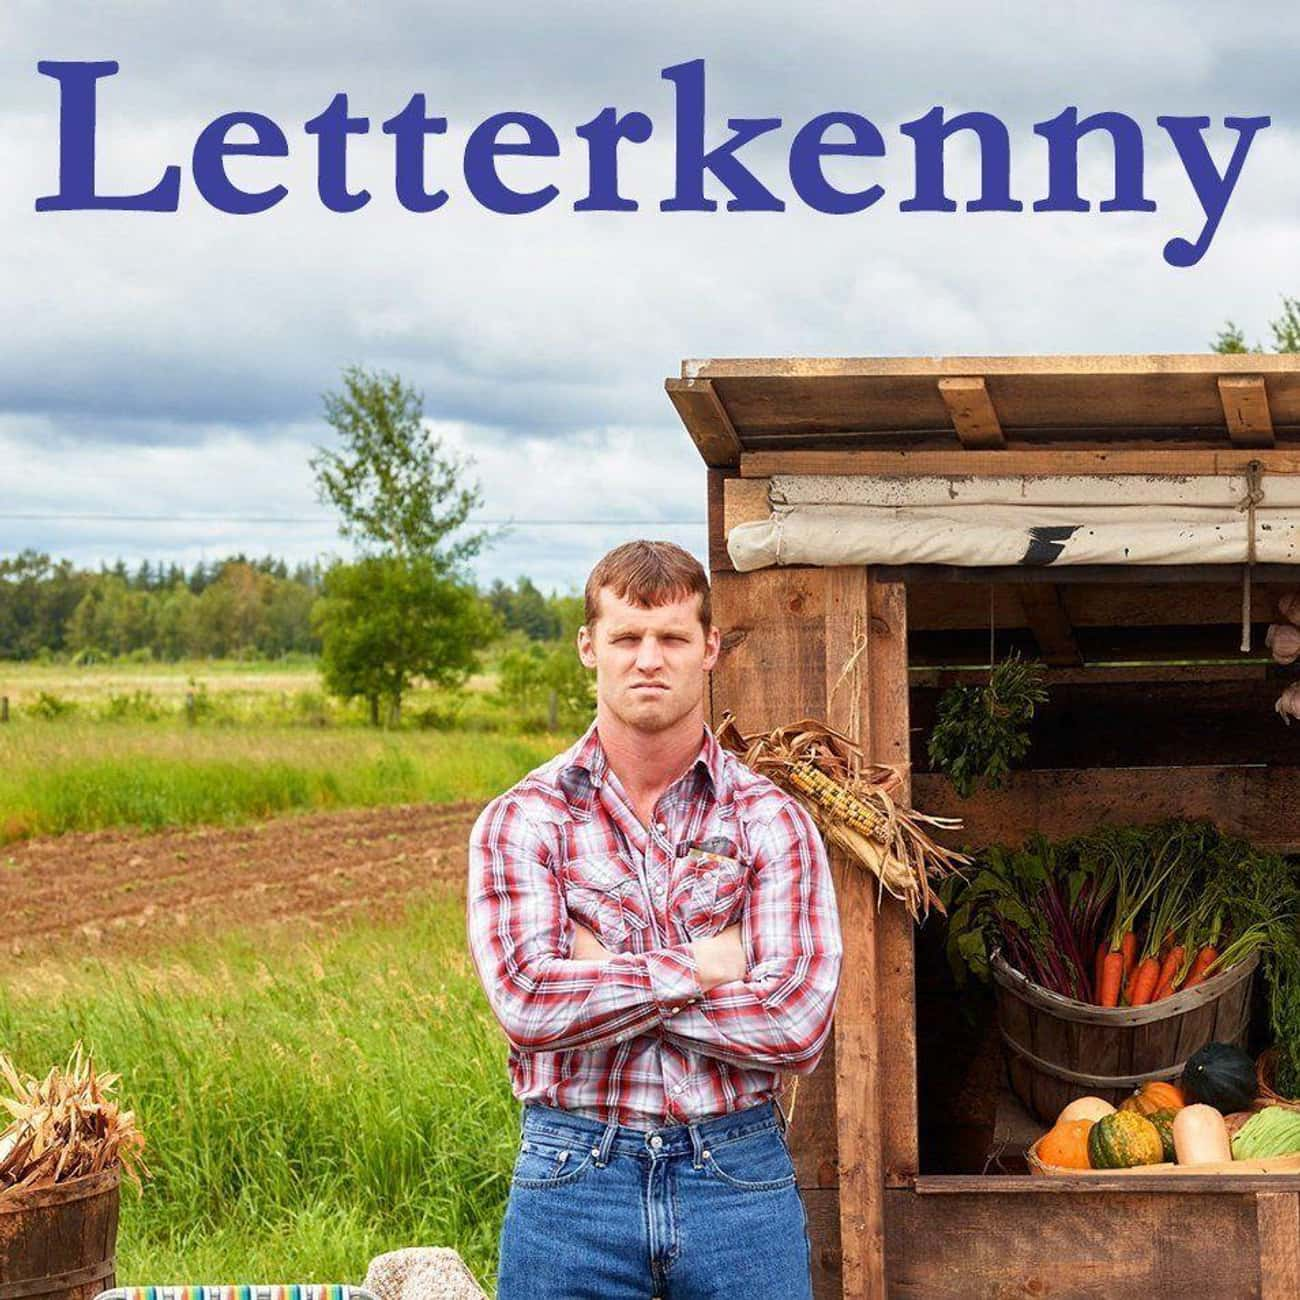 Letterkenny is listed (or ranked) 4 on the list What To Watch If You Love 'That '70s Show'